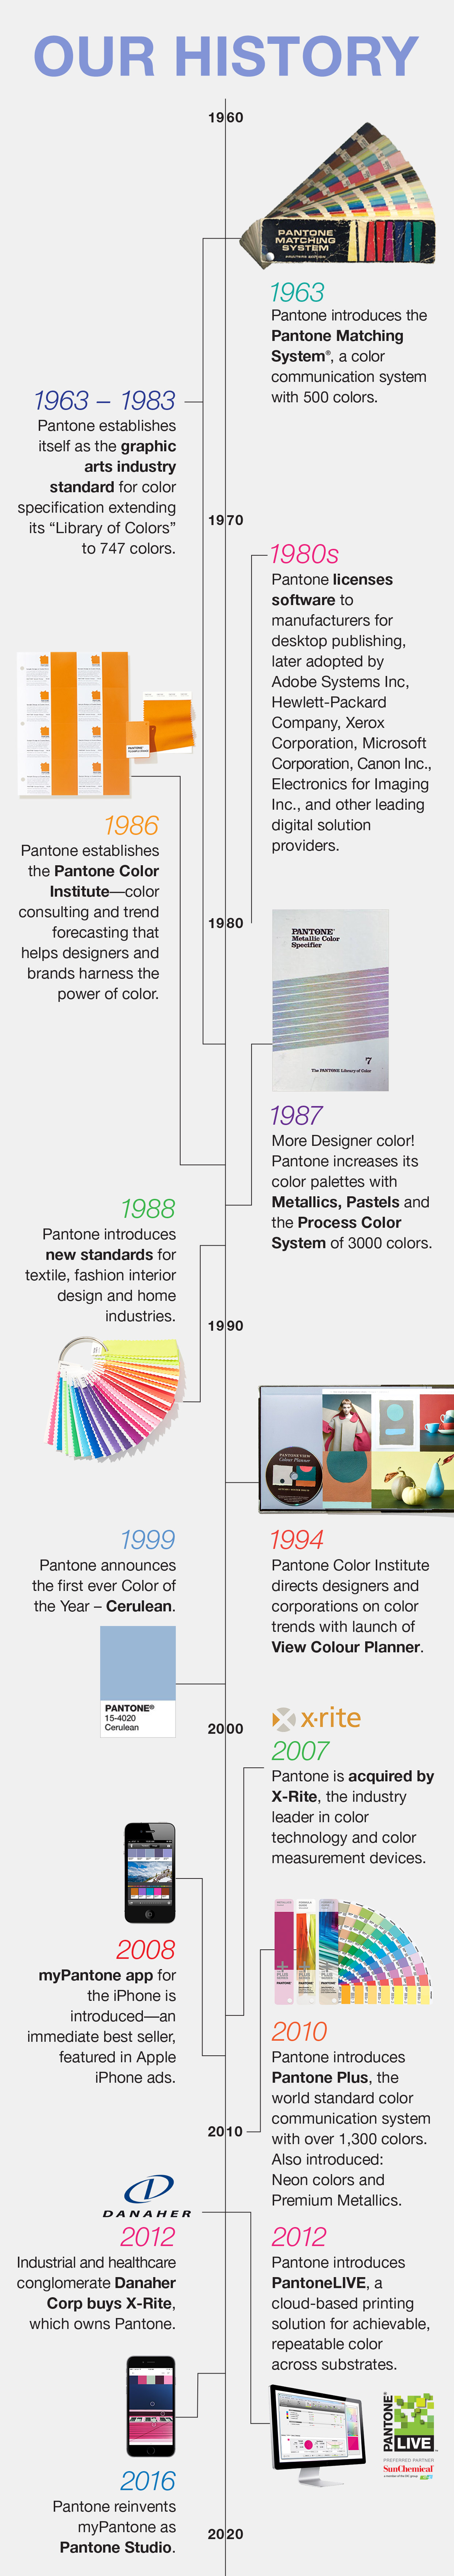 The History of Pantone Timeline